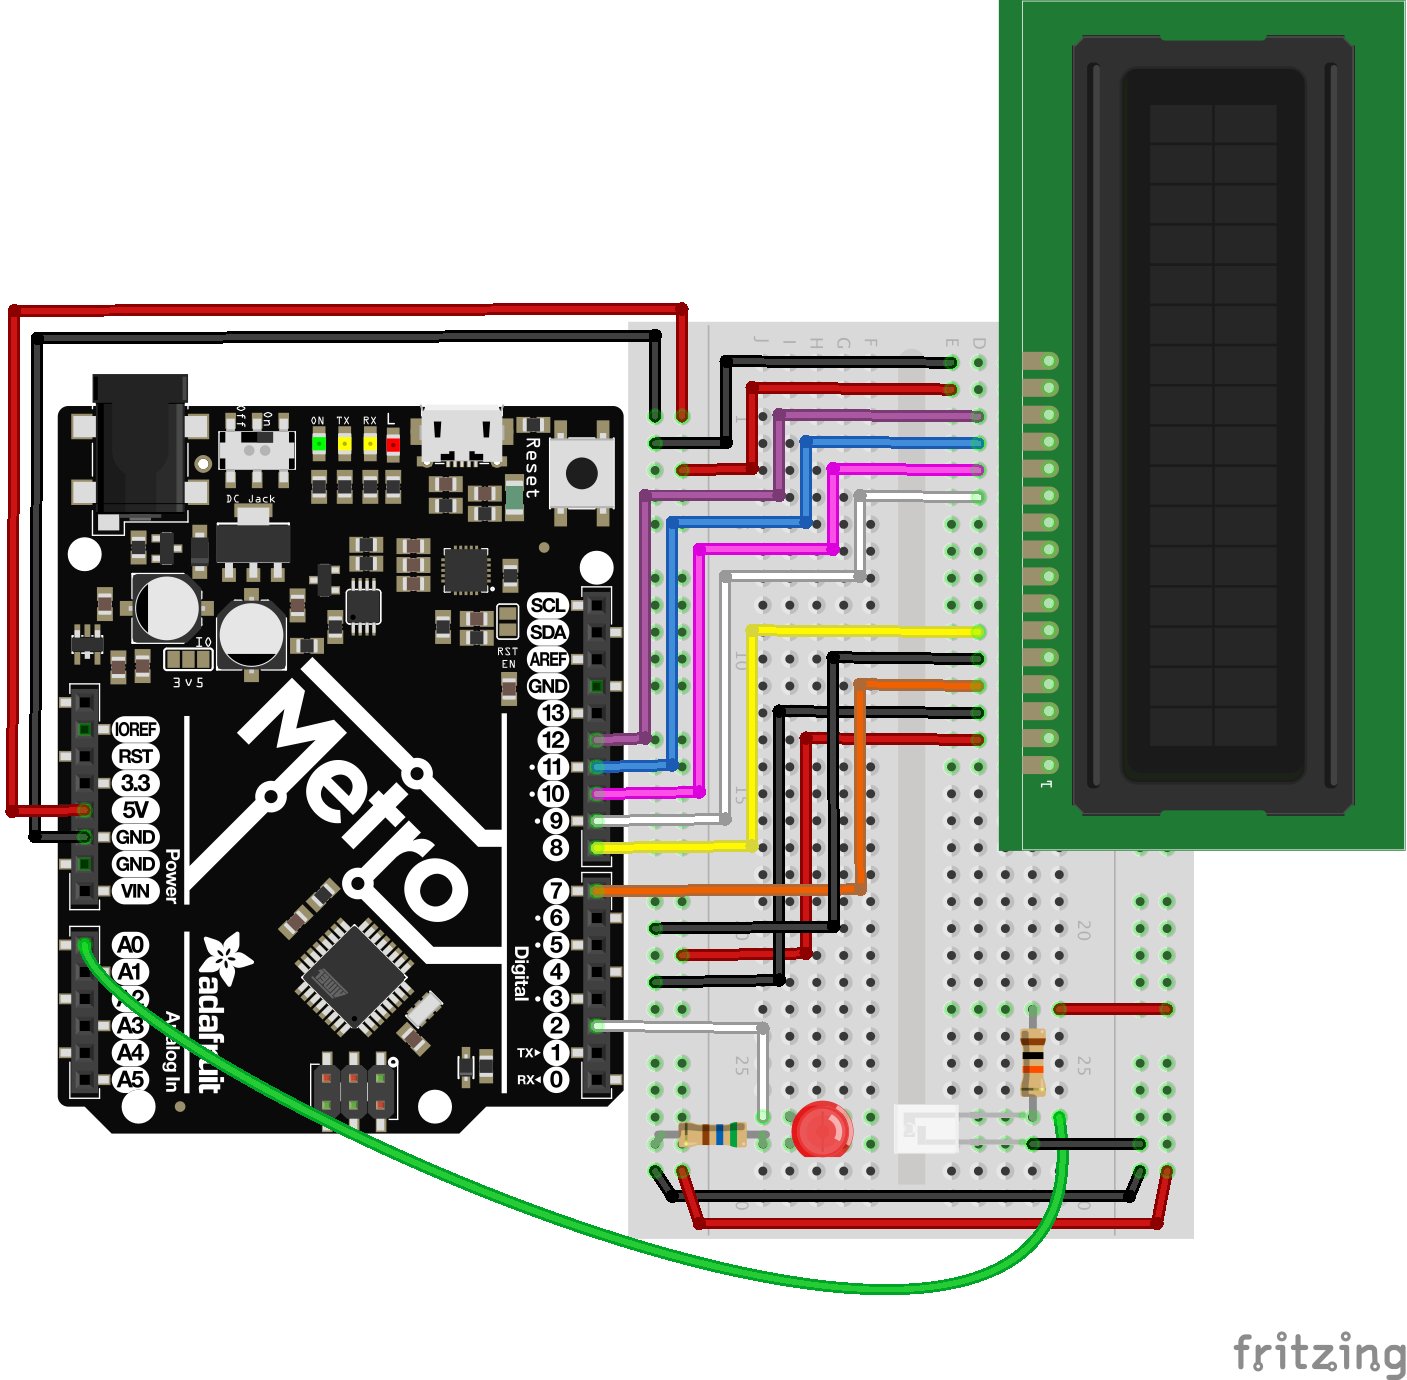 adafruit_products_quest02_bb.png